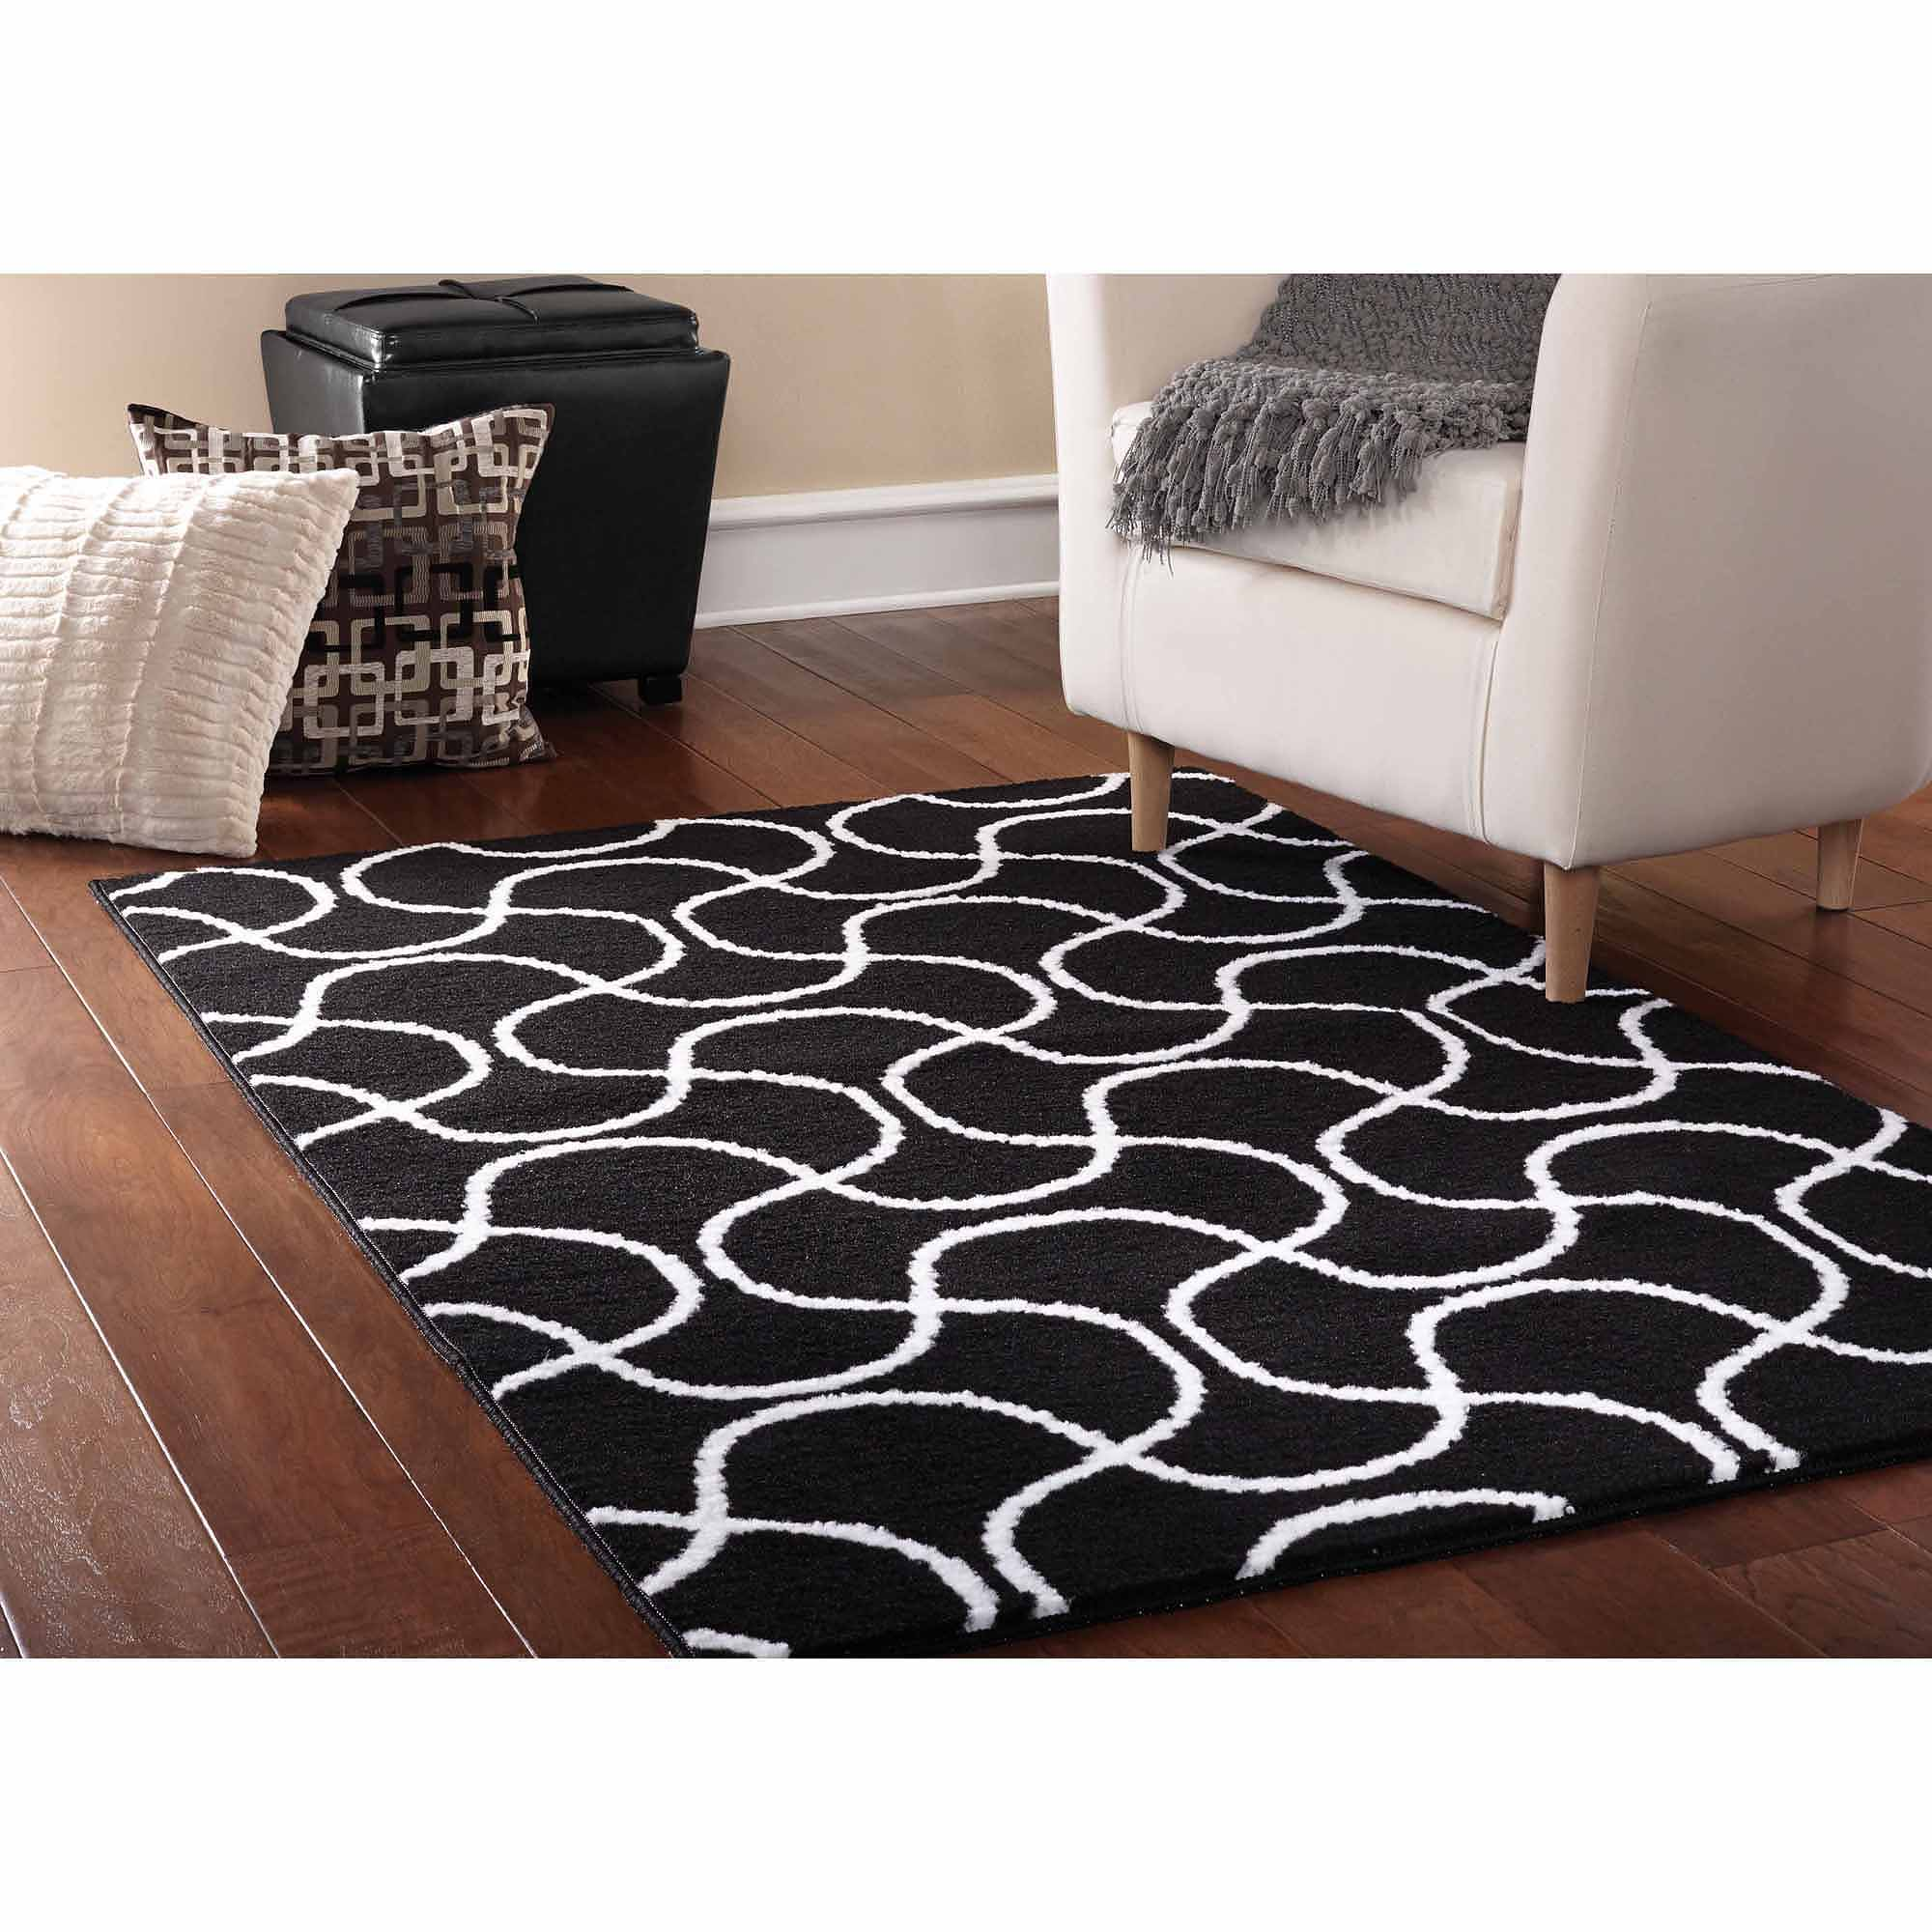 Mainstays Drizzle Area Rug, Black/White